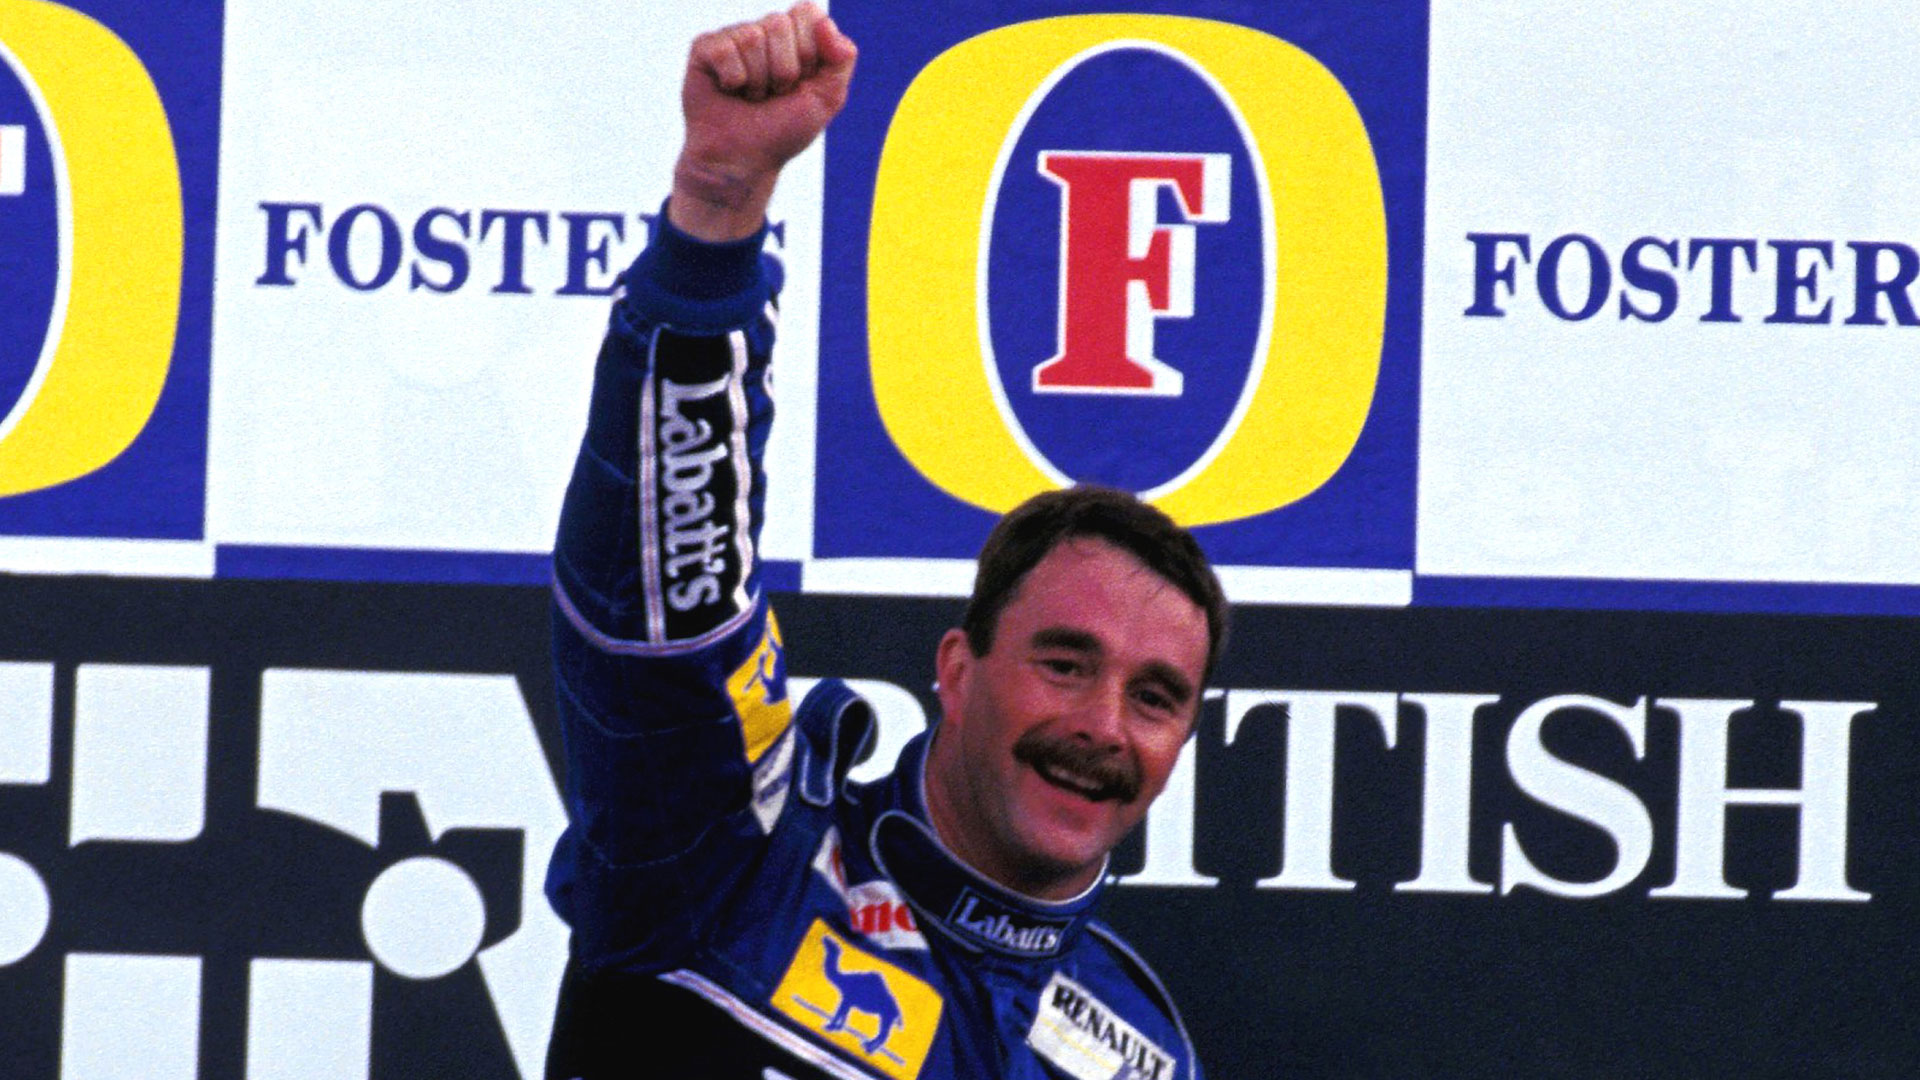 Nigel Mansell says check your vehicle